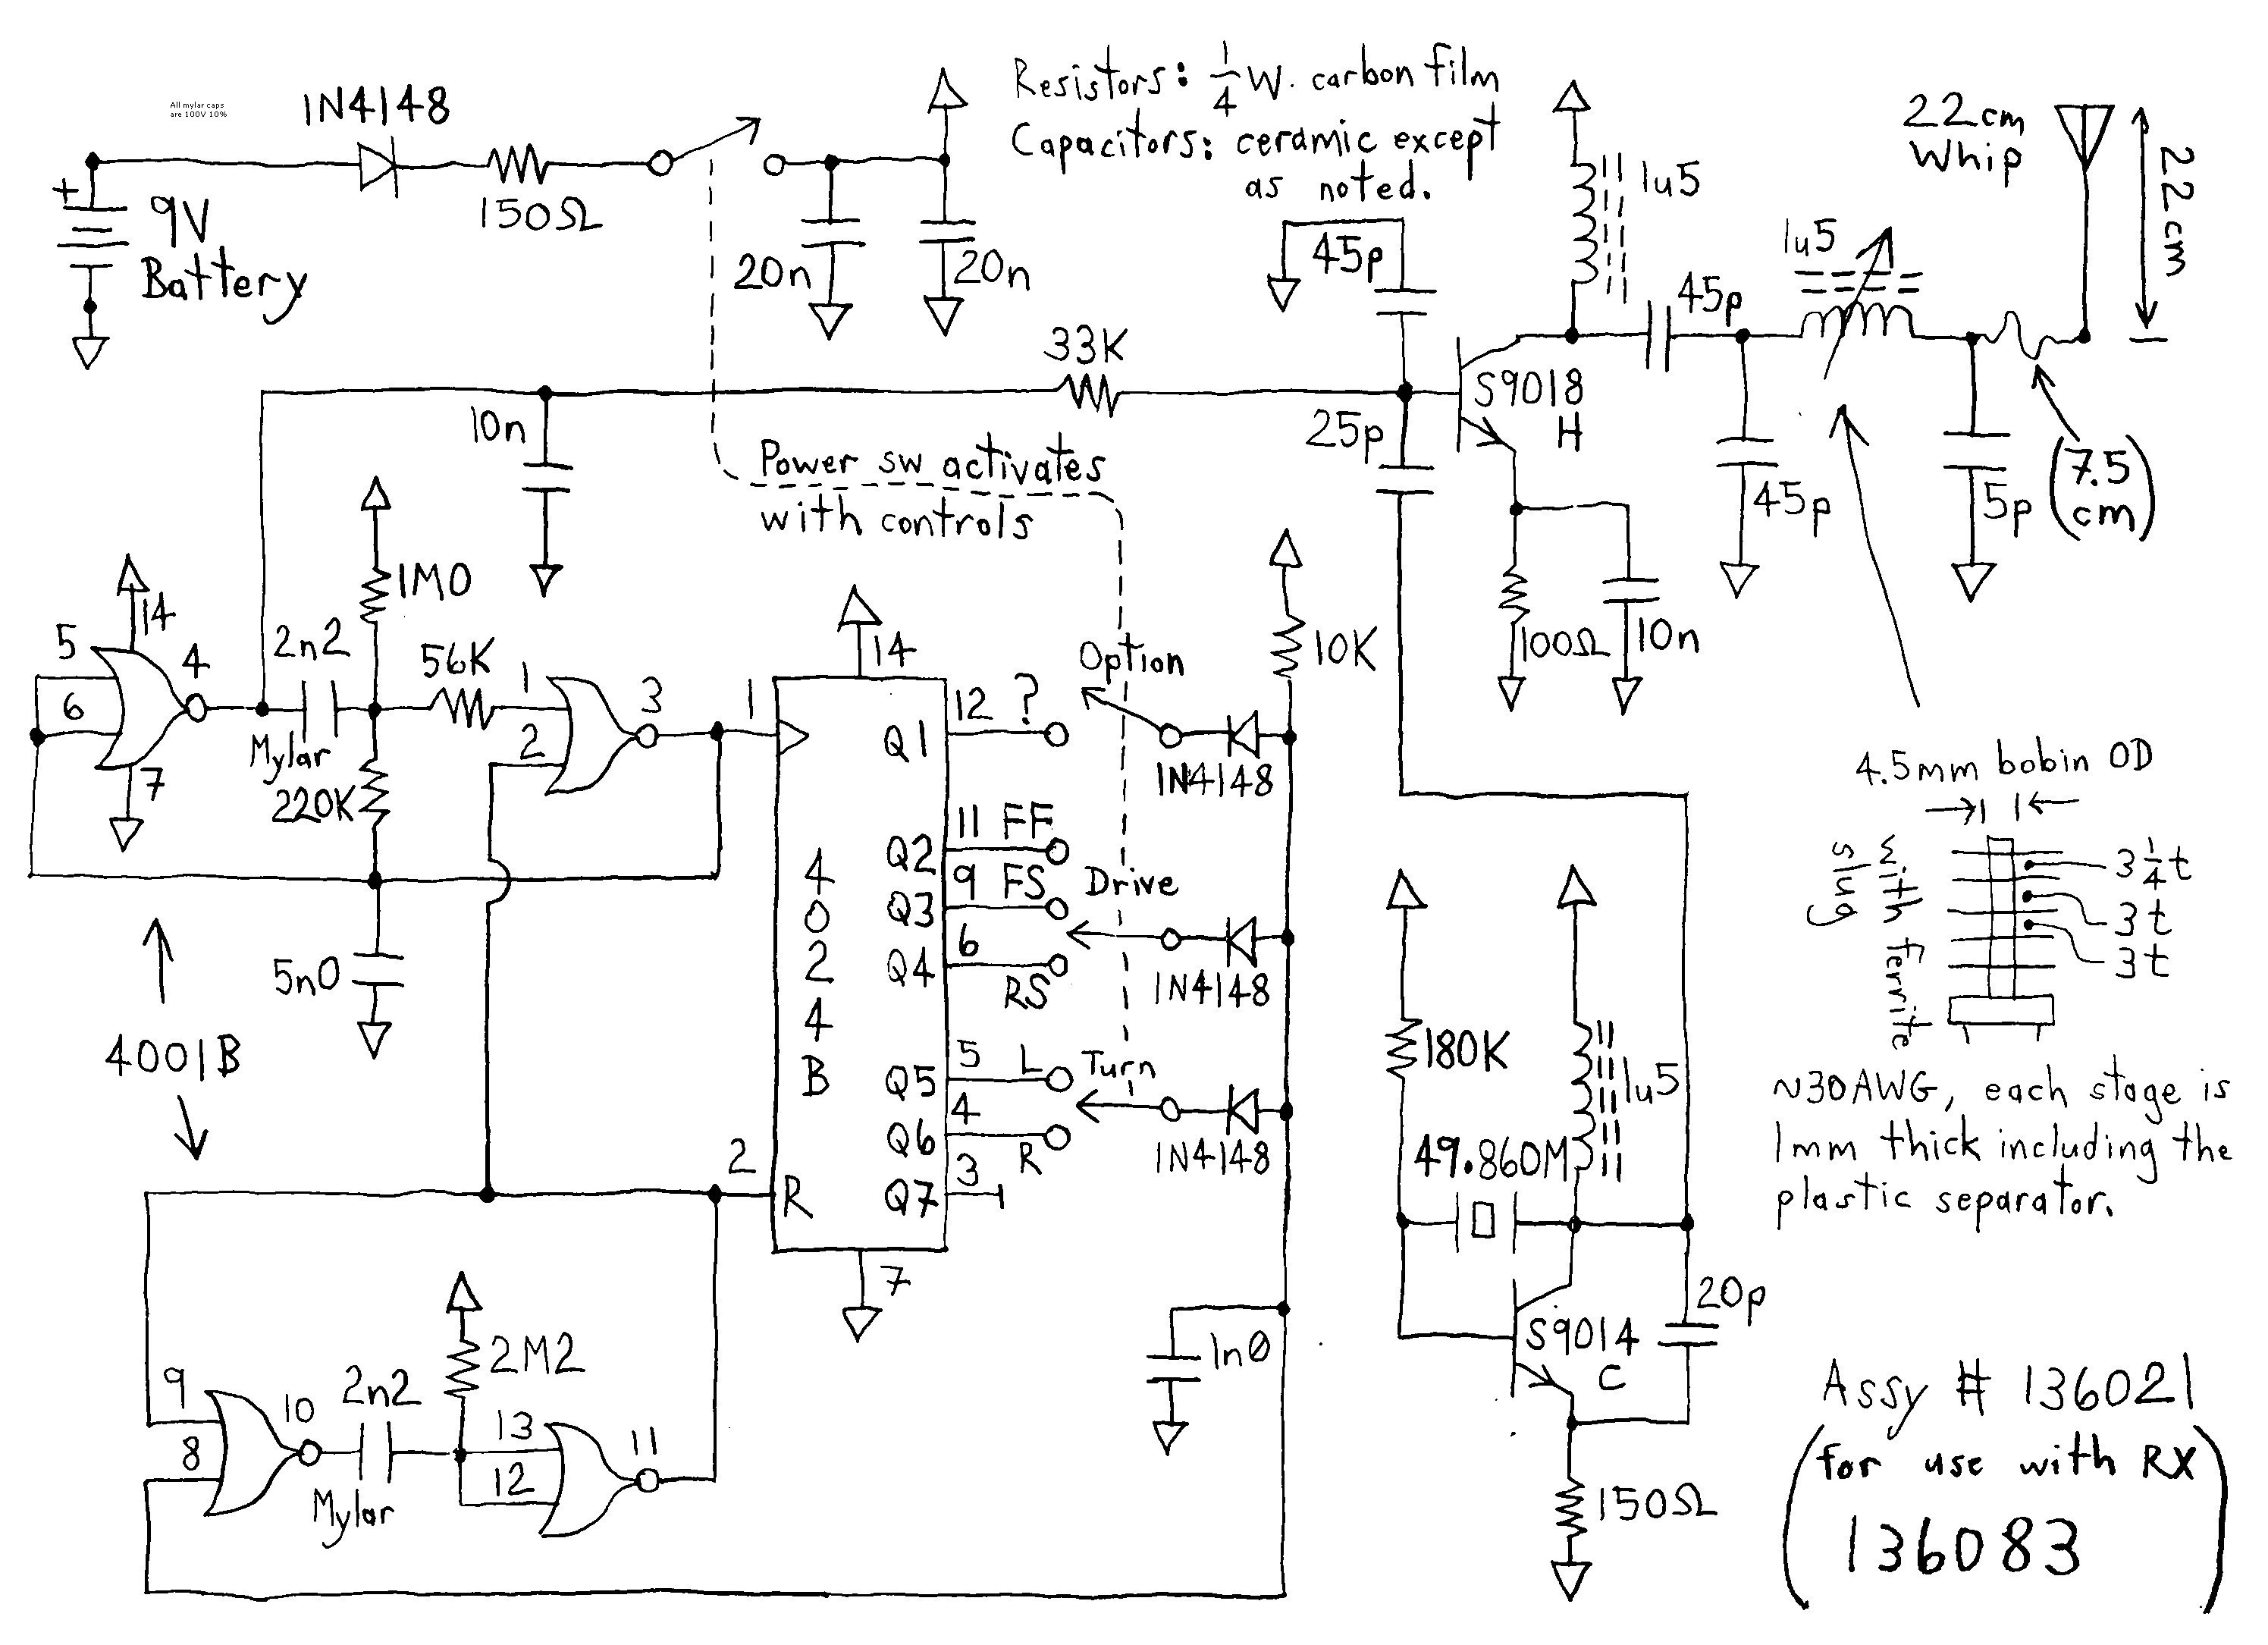 Gibson Explorer Wiring Trusted Wiring Diagram EMG Wiring Diagrams 2 Volume Gibson  Explorer Emg Guitar Wiring Diagrams